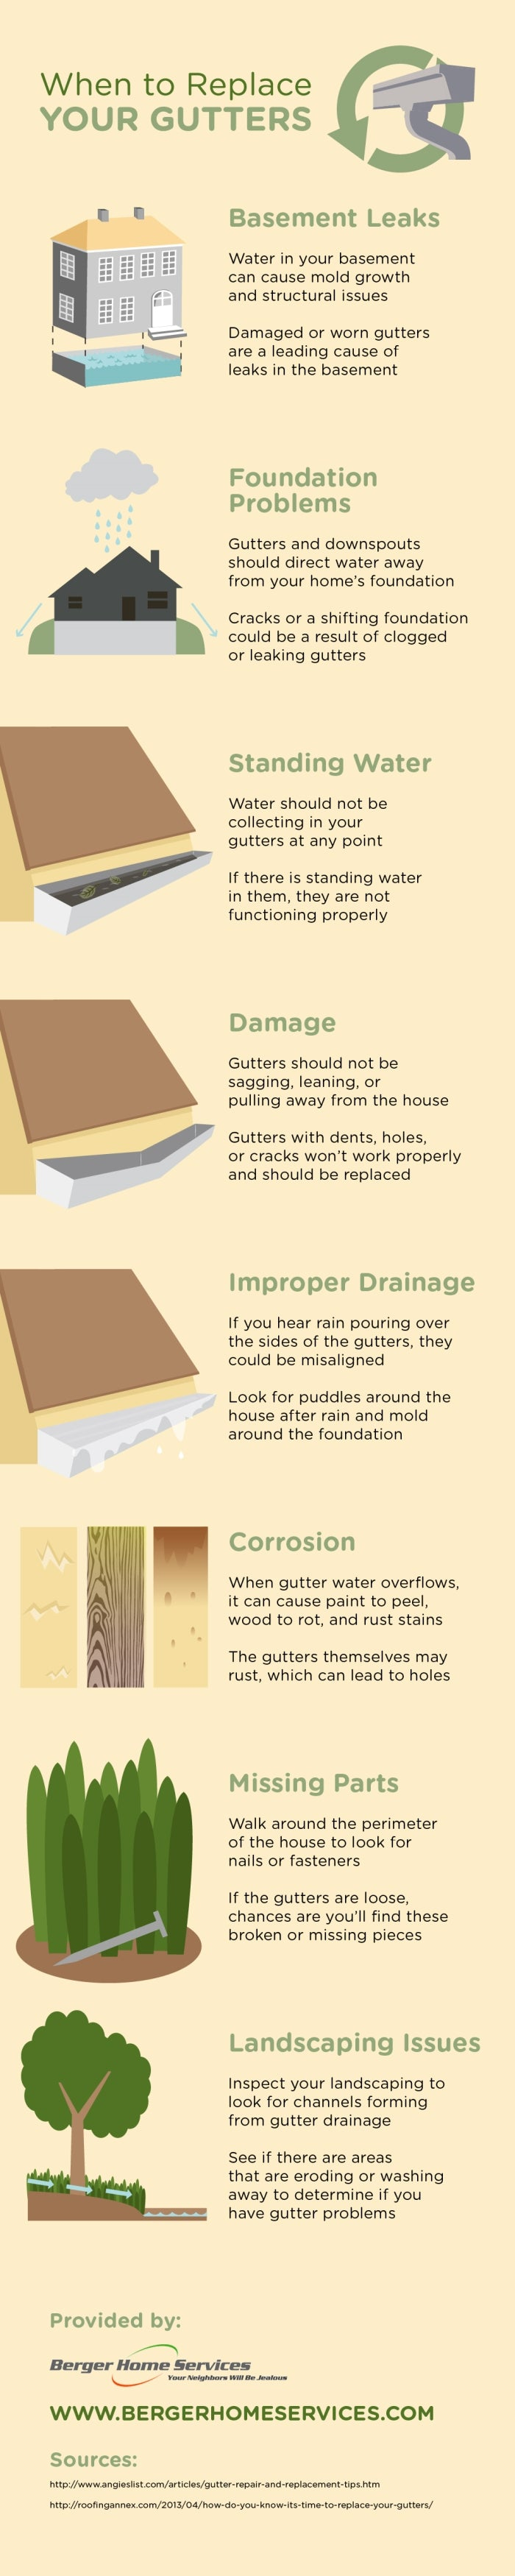 Gutter Infographic